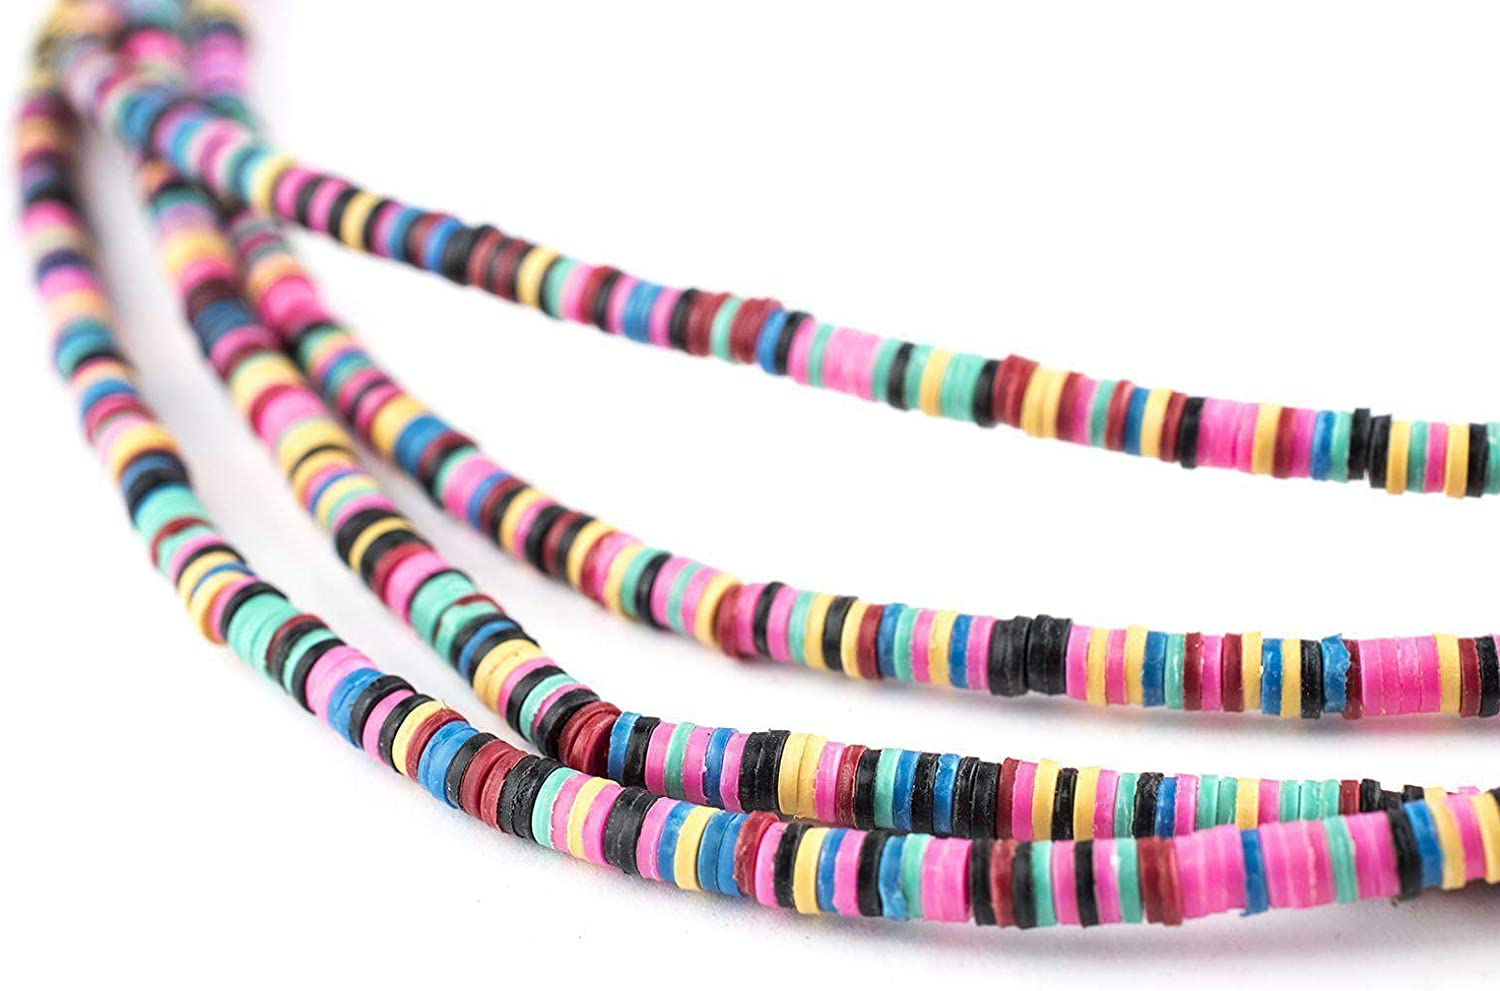 Sage 2str BEAUTIFUL Soft AFRICAN Colored VINYL Heishi beads 16 inch strand 2 Strand Per Order 6mm or 8mm